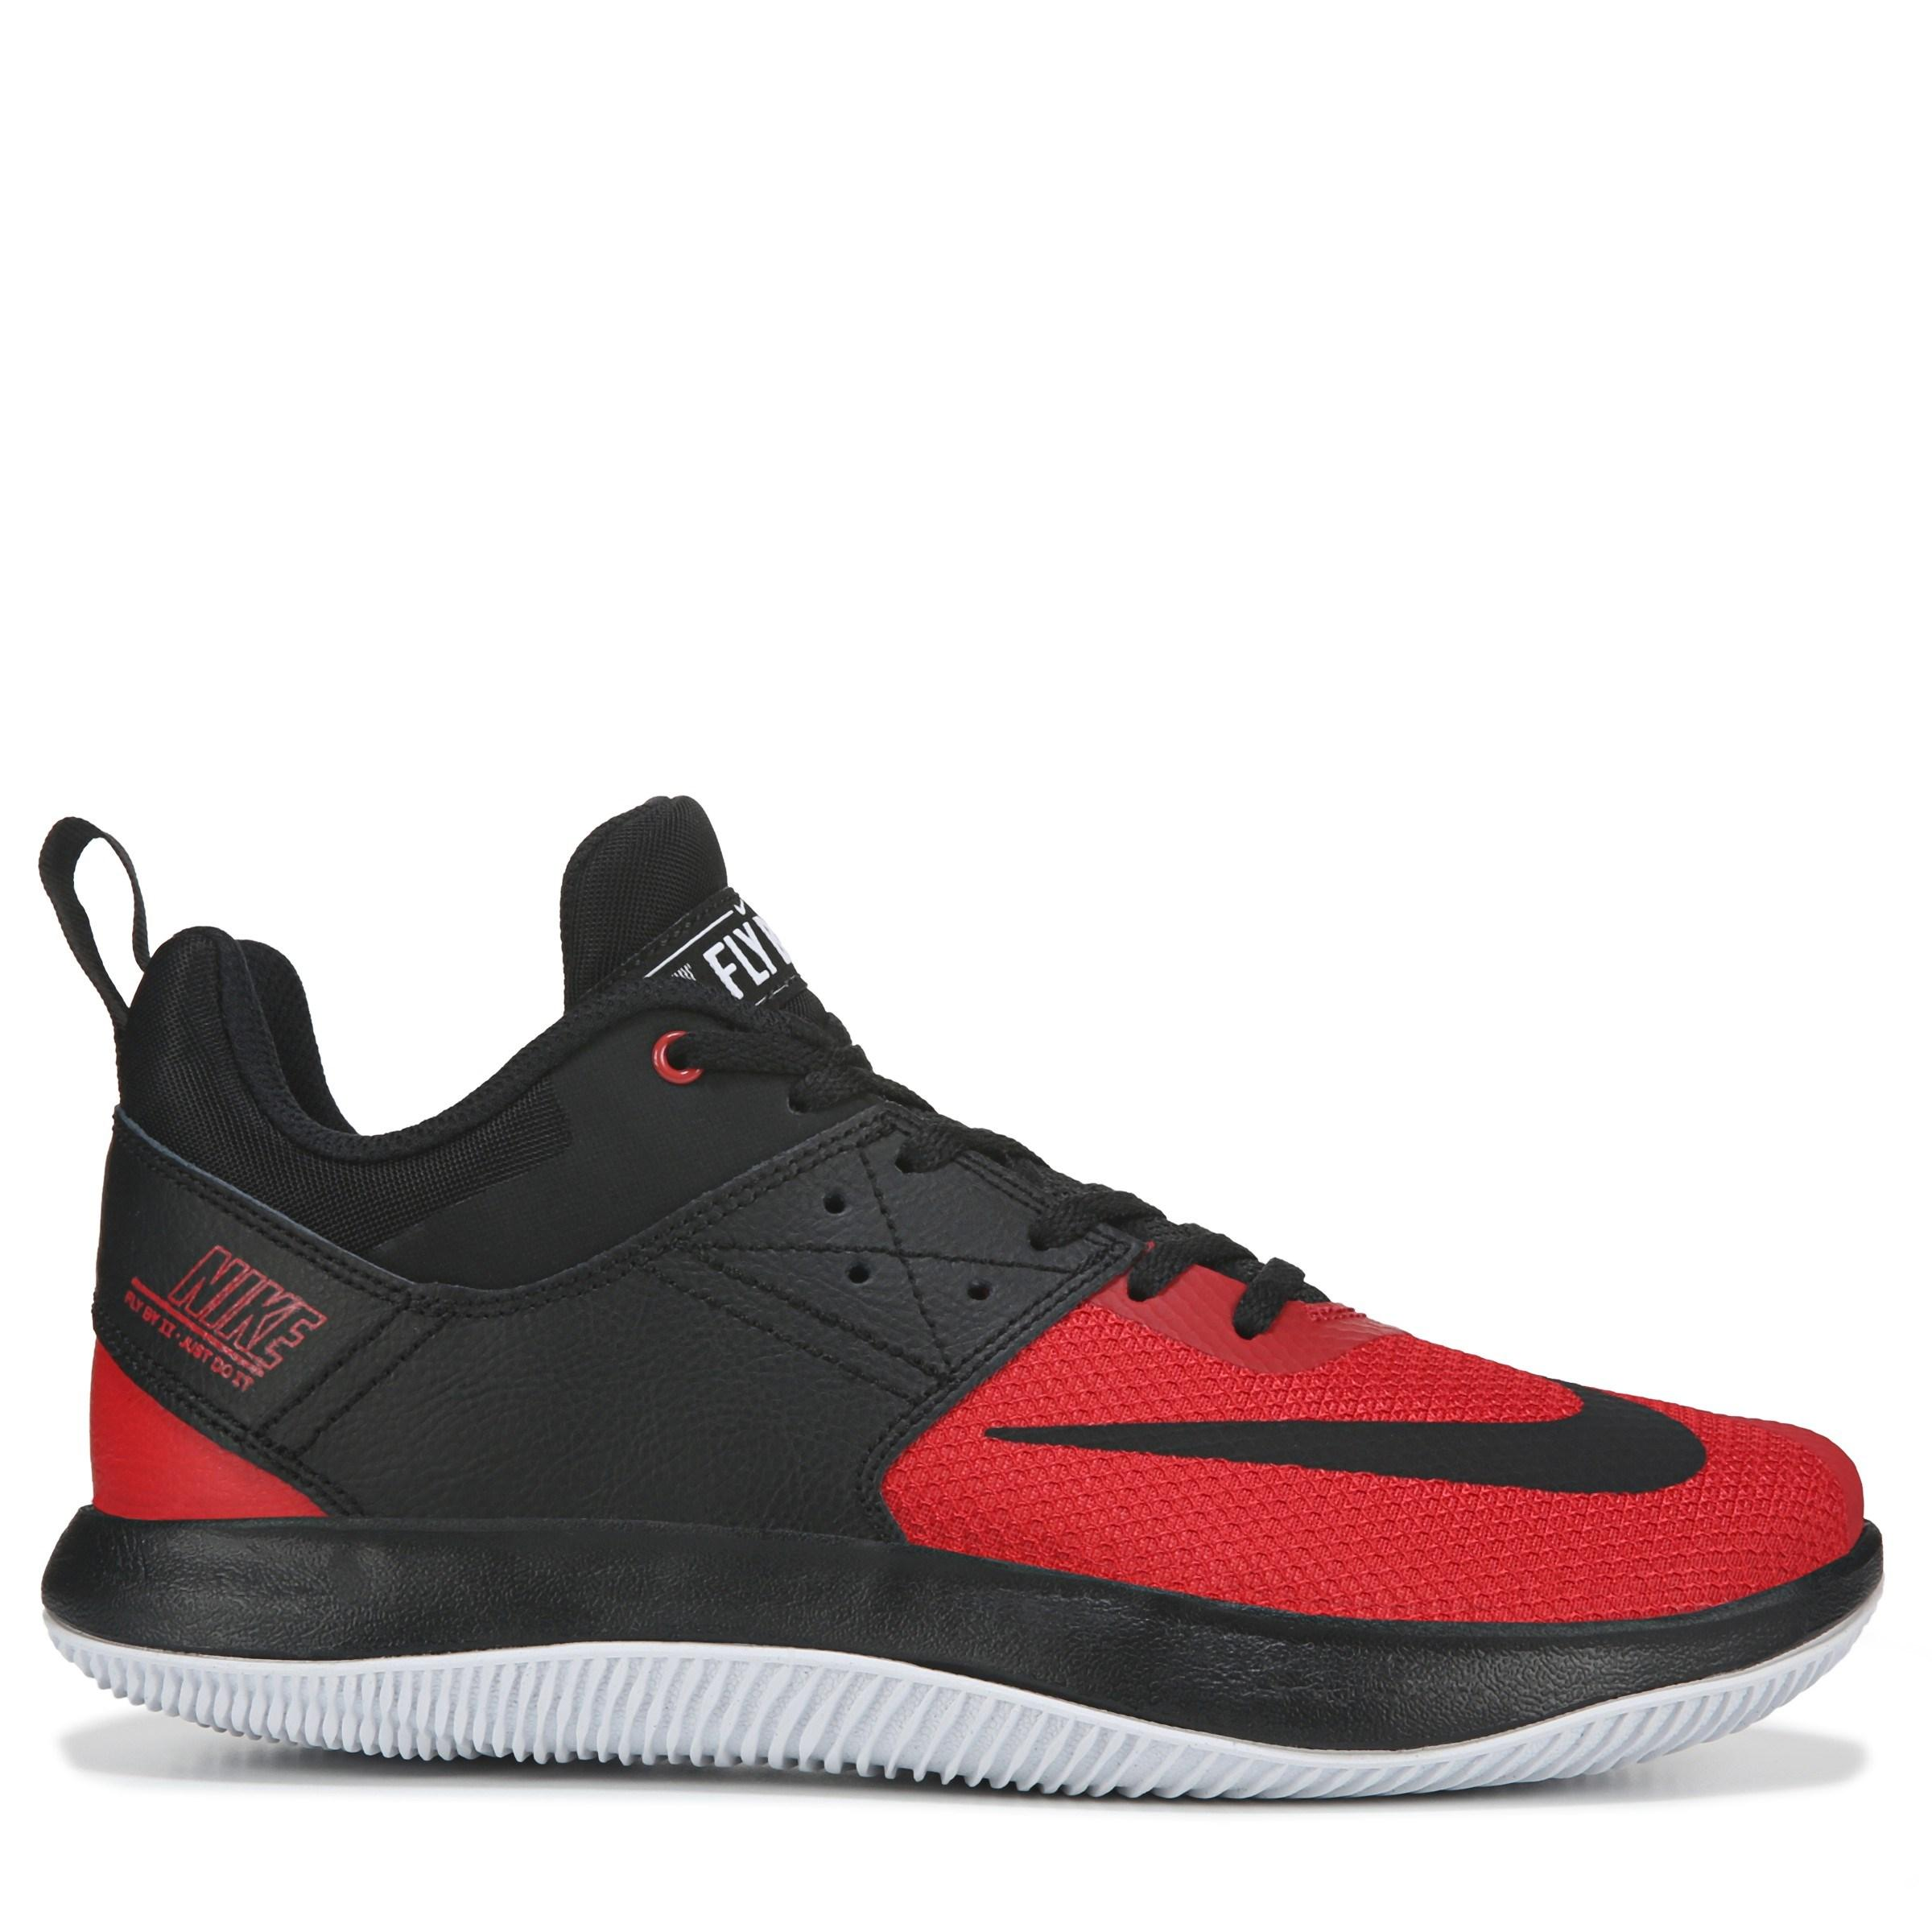 Nike Leather Fly.by Low Ii Basketball